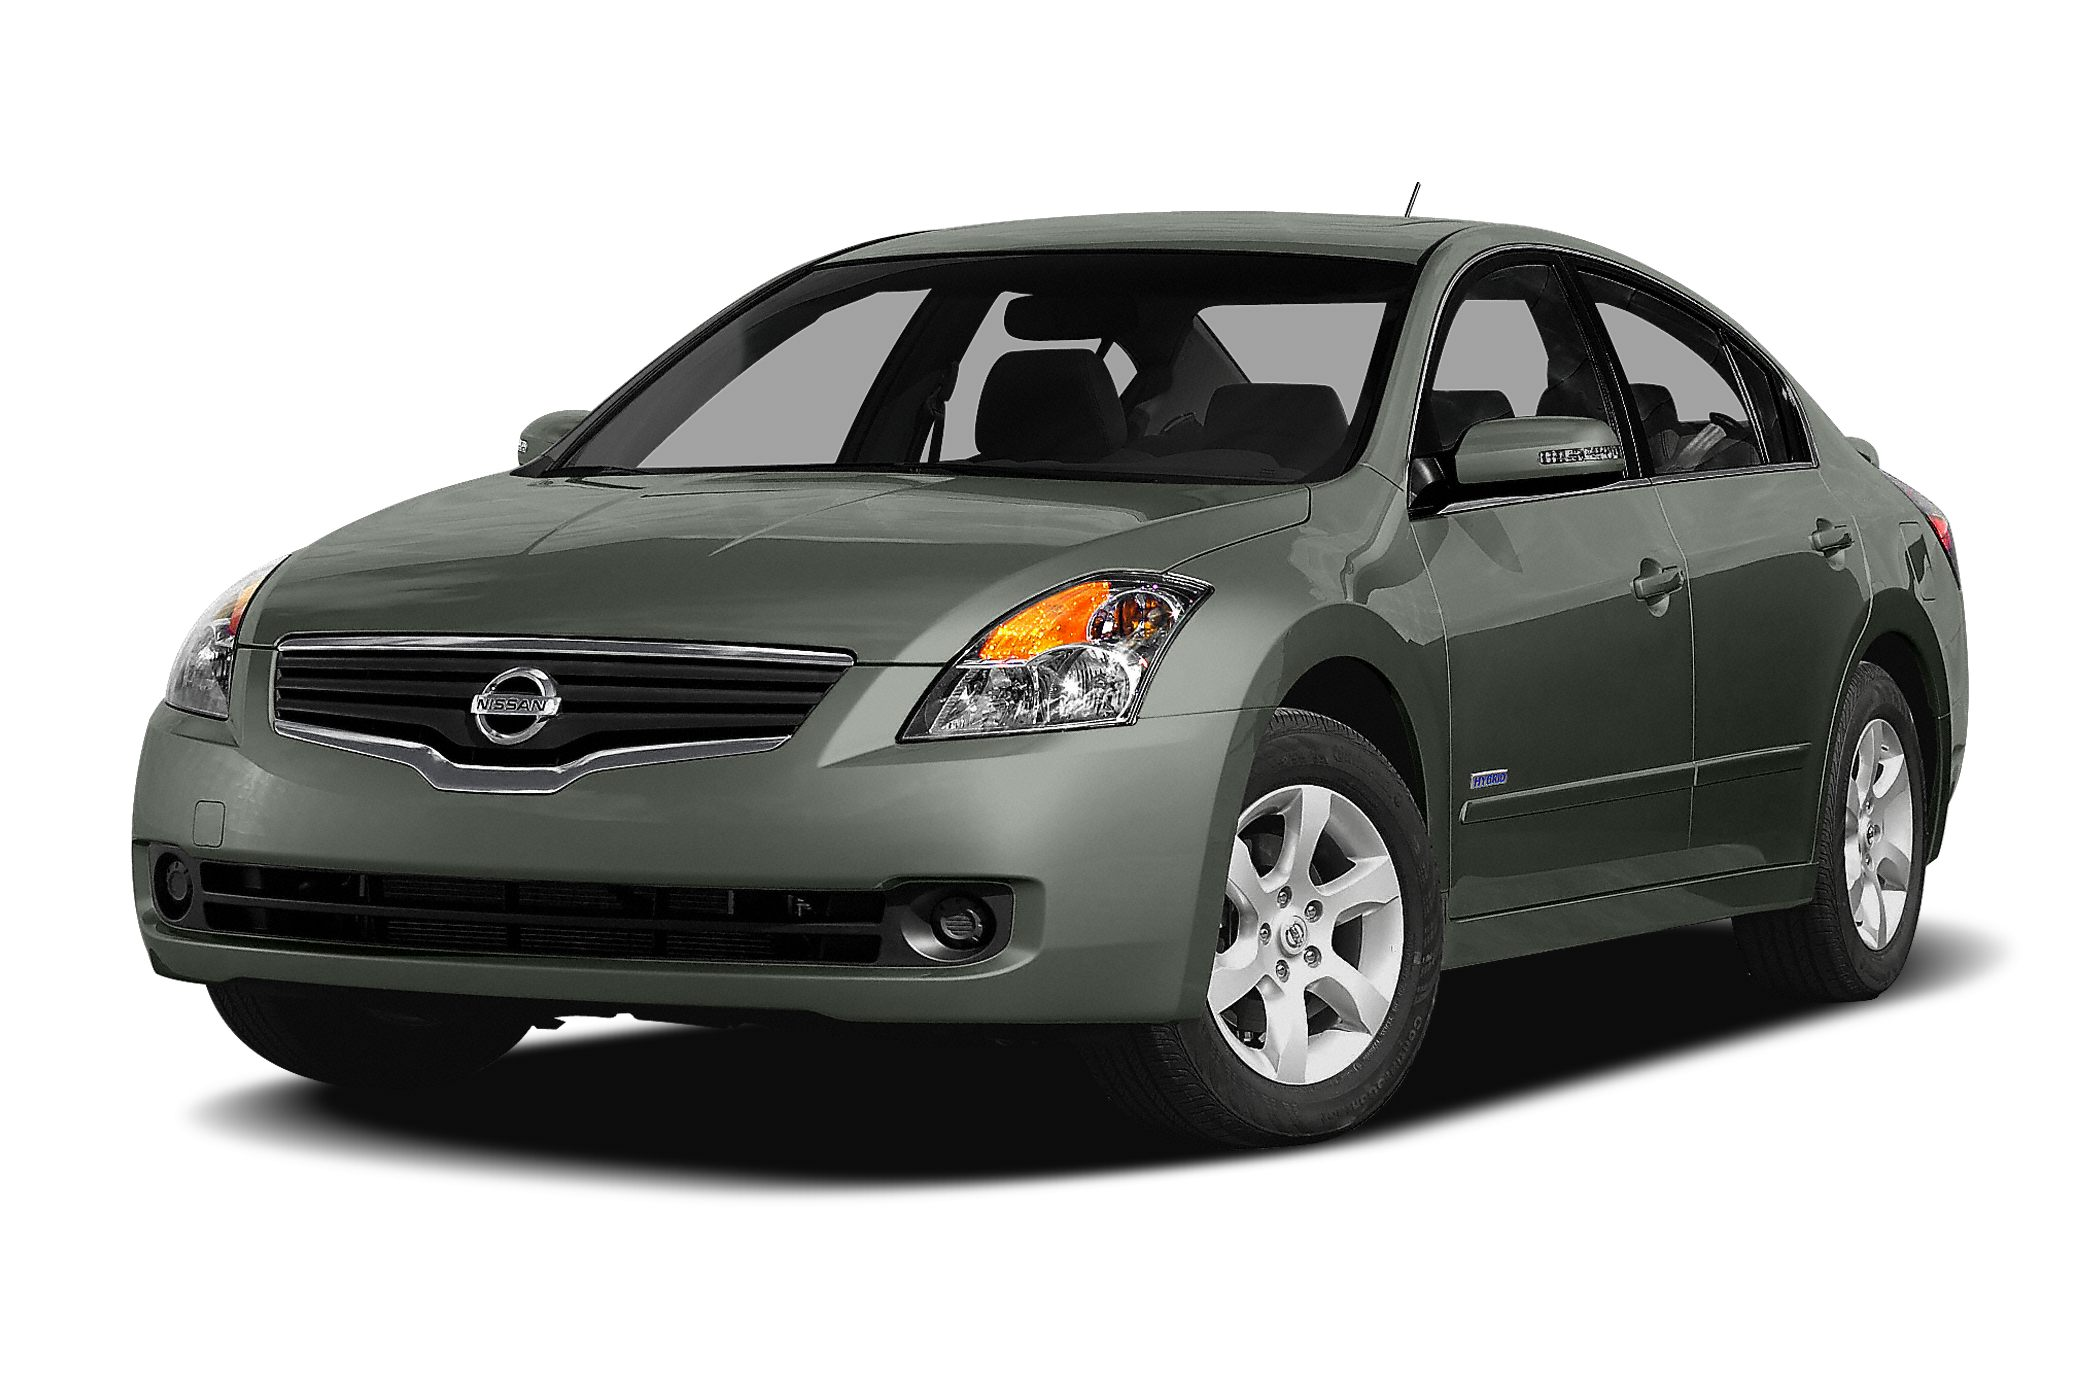 2007 Altima Hybrid Owner Reviews 8